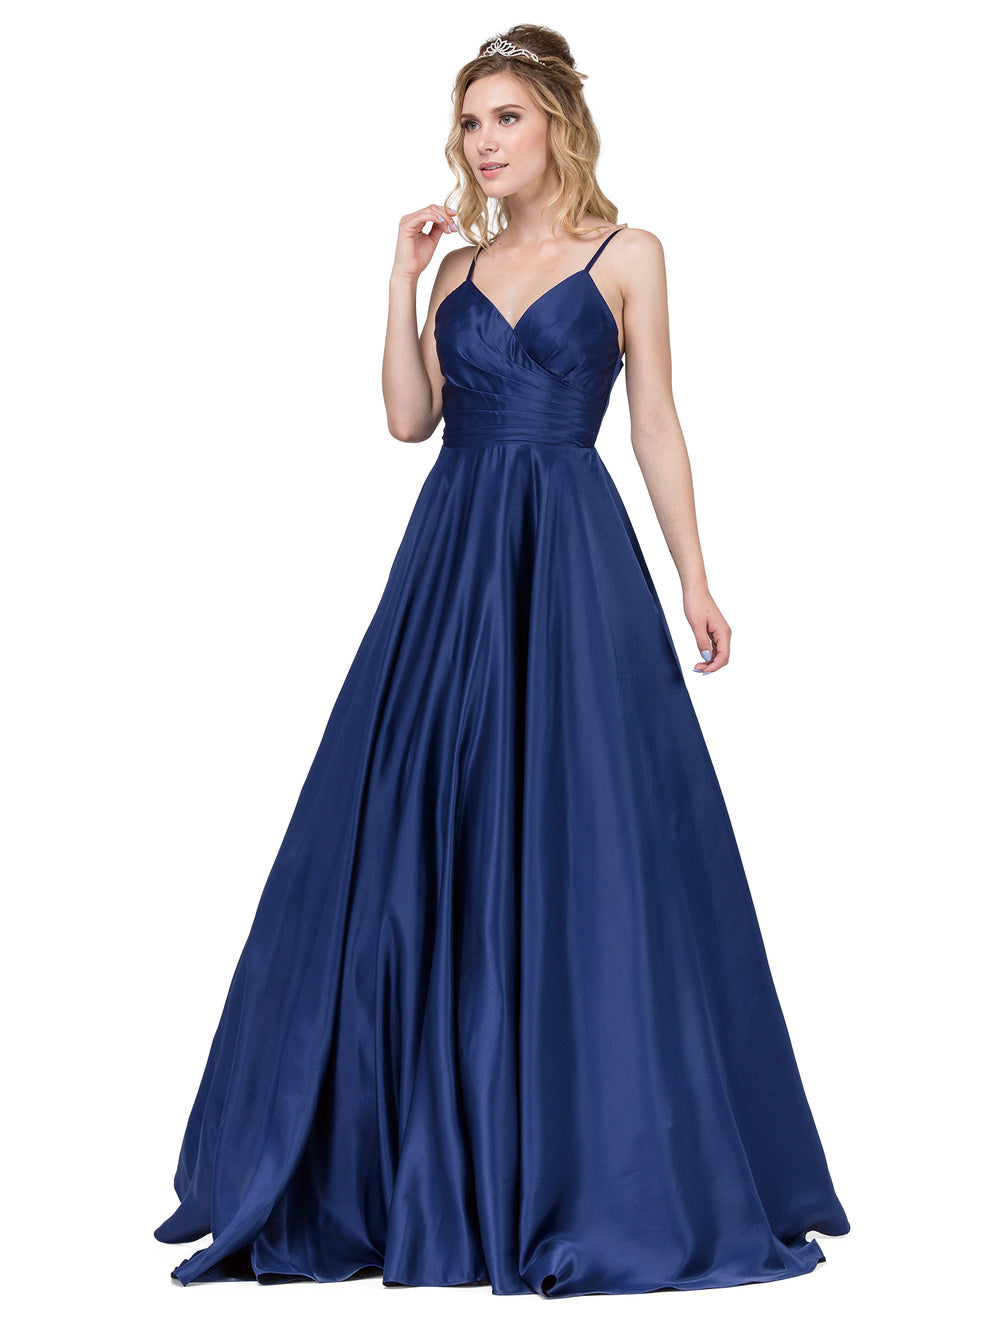 Dancing Queen DQ 2339 - A-Line Ruched Sweetheart Ballgown with Satin Skirt & Pockets - Diggz Prom